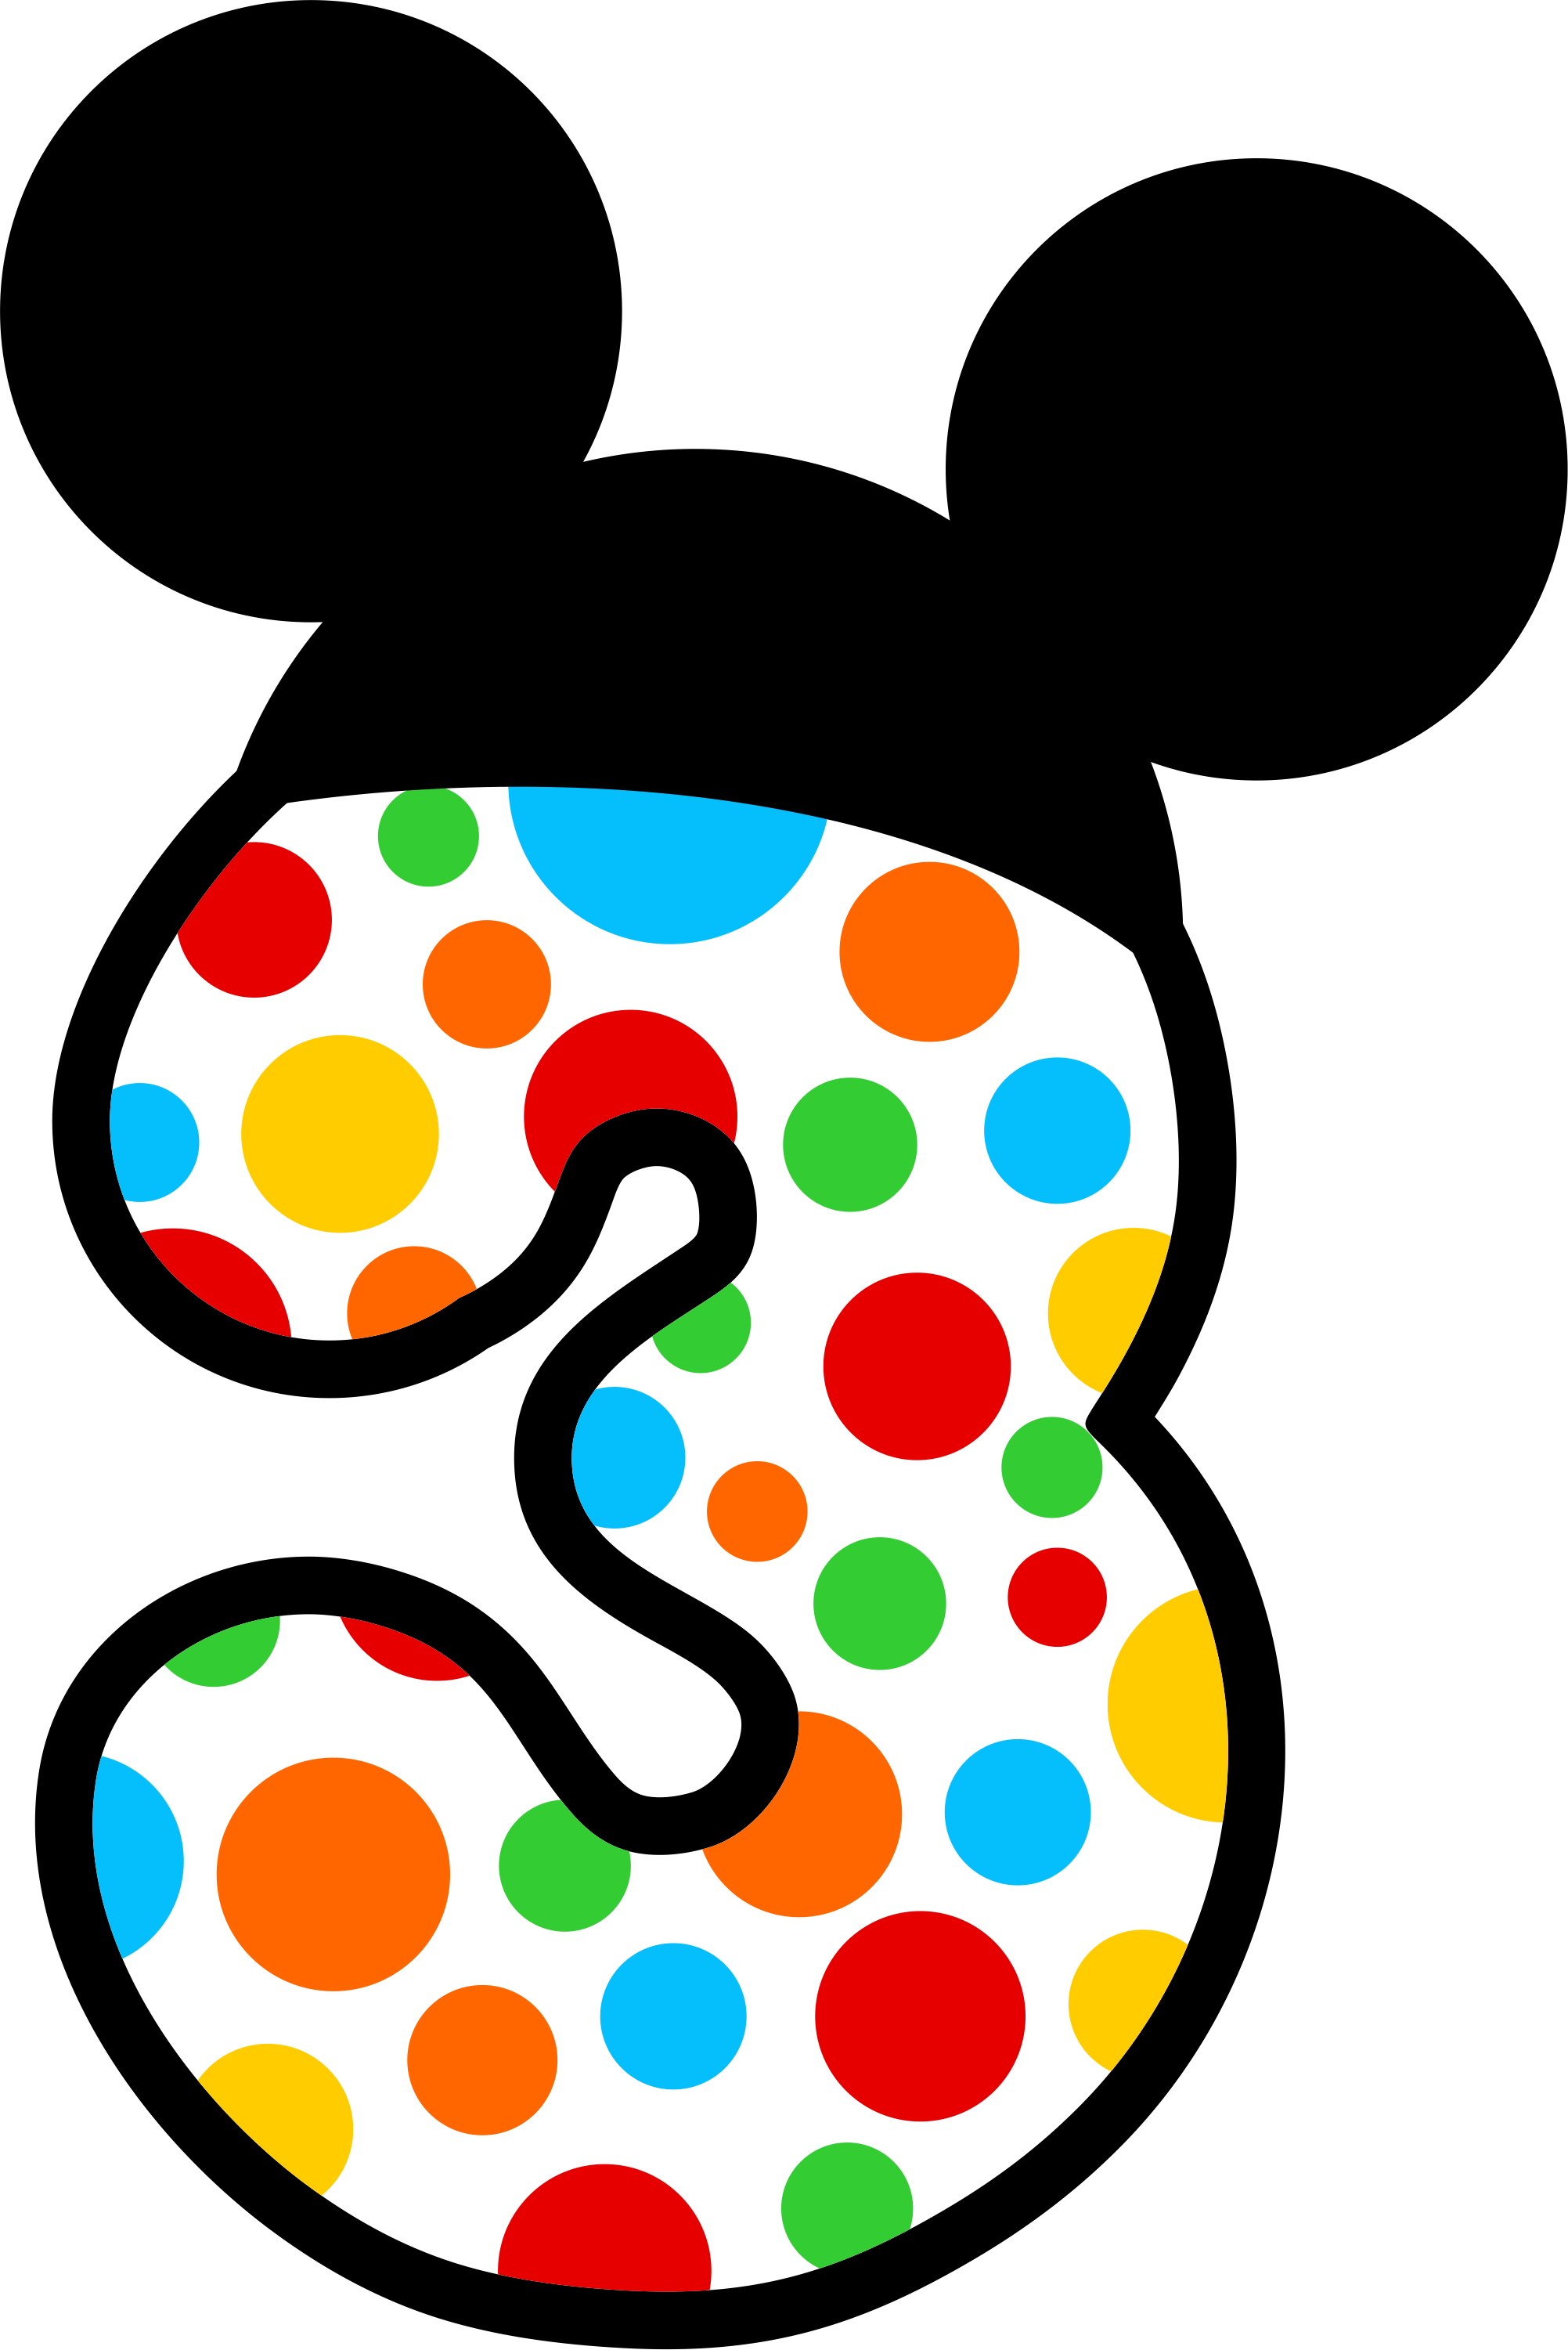 Mickey Mouse Pixel Art library of mickey mouse baseball embroidery design clipart